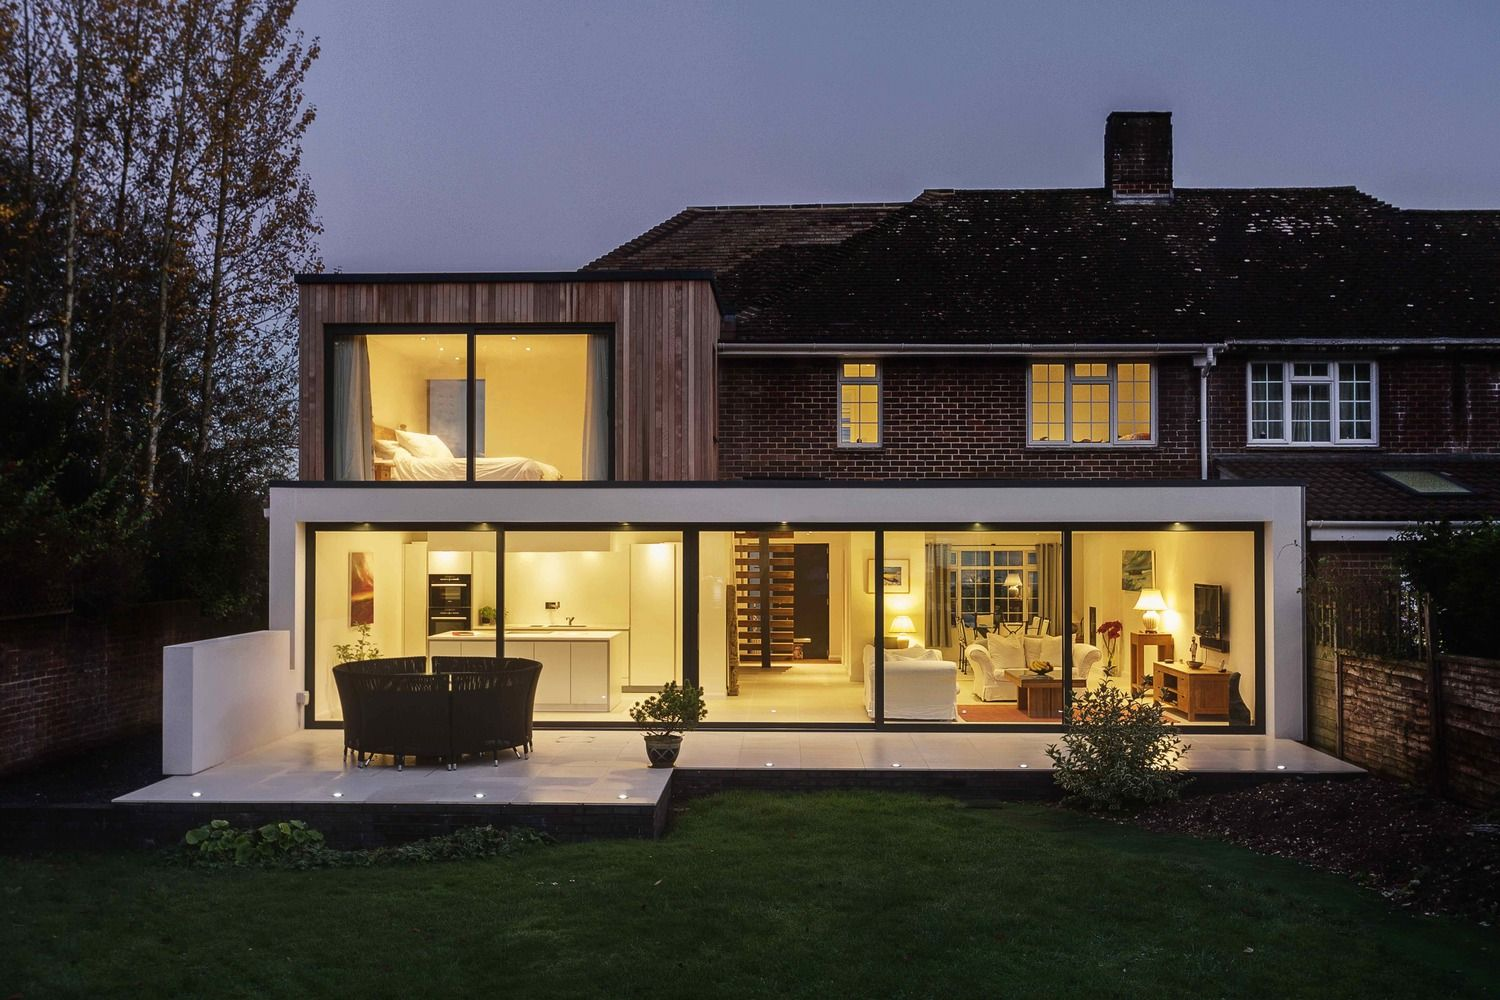 Adam architecture groundbreaking country house in hampshire - Gallery Of The Beckett House Adam Knibb Architects 1